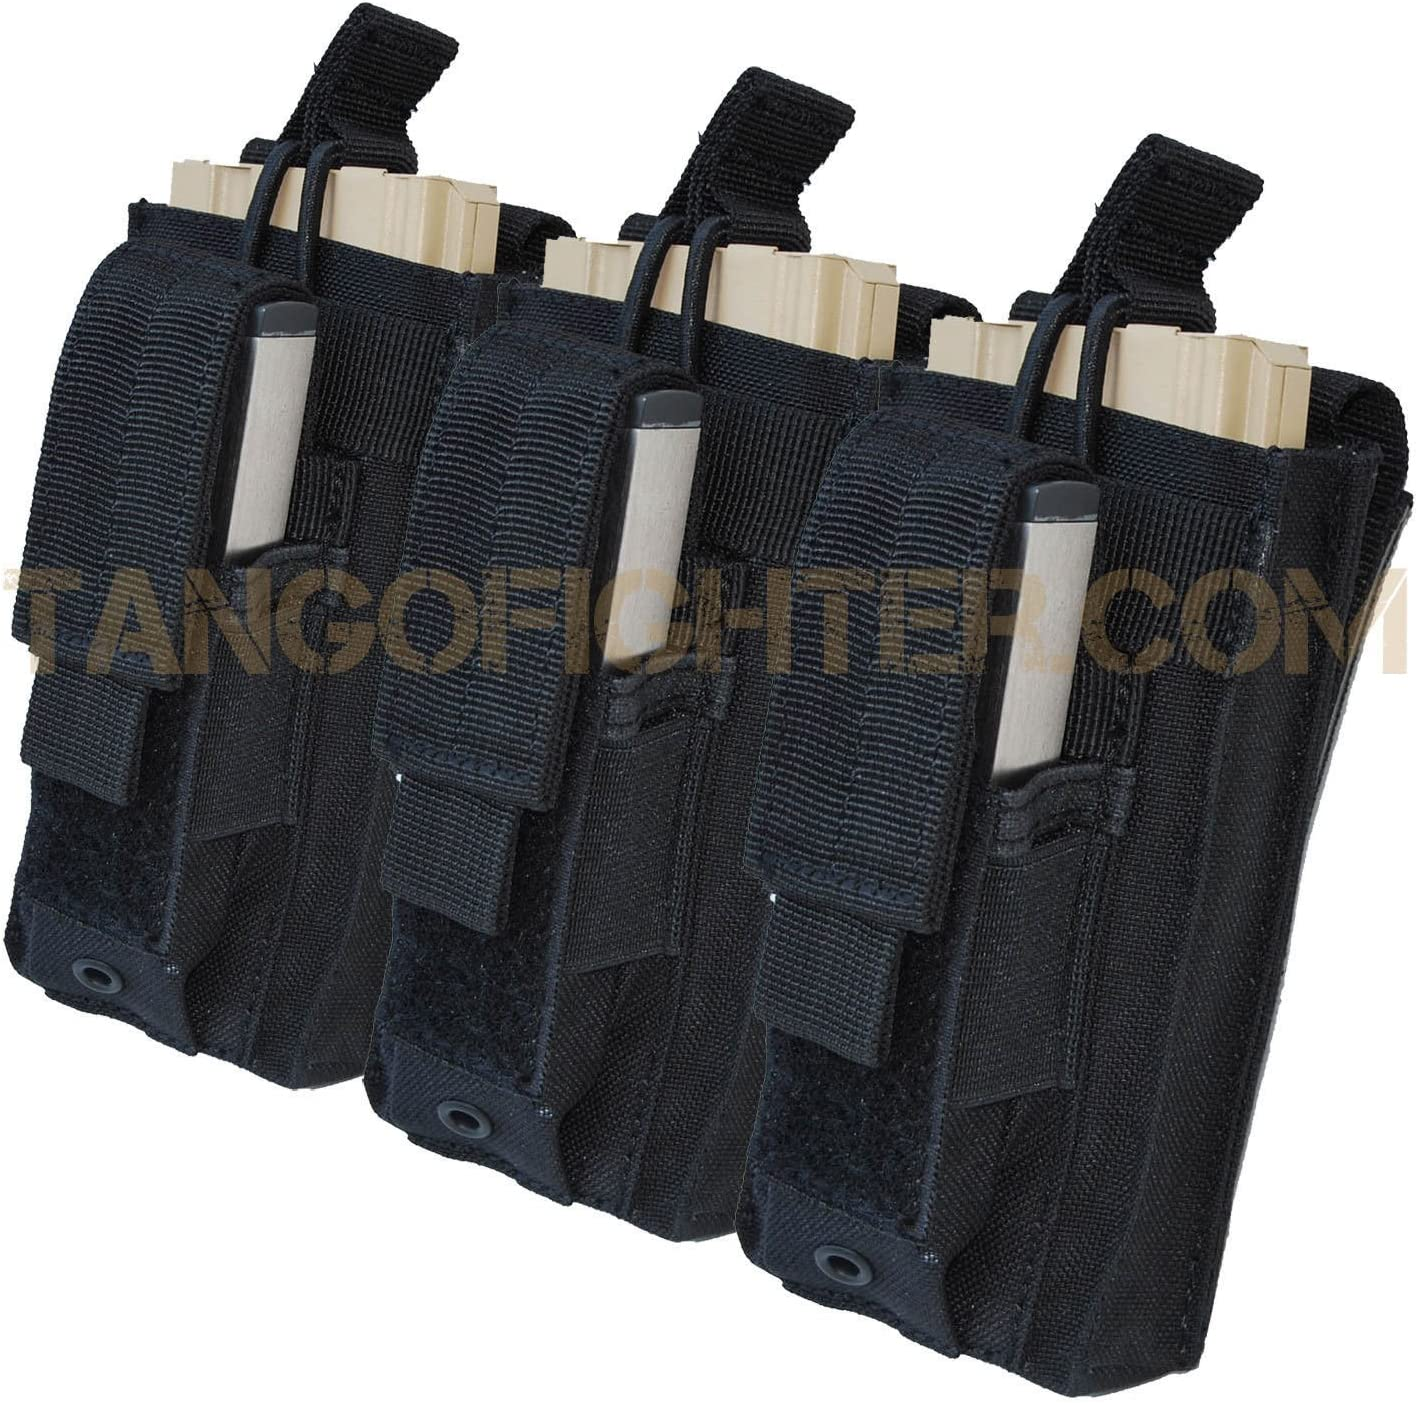 B0048Z9YPA Condor MA55 Triple Kangaroo Mag Pouch, Olive Drab 81xGbCgMJCL